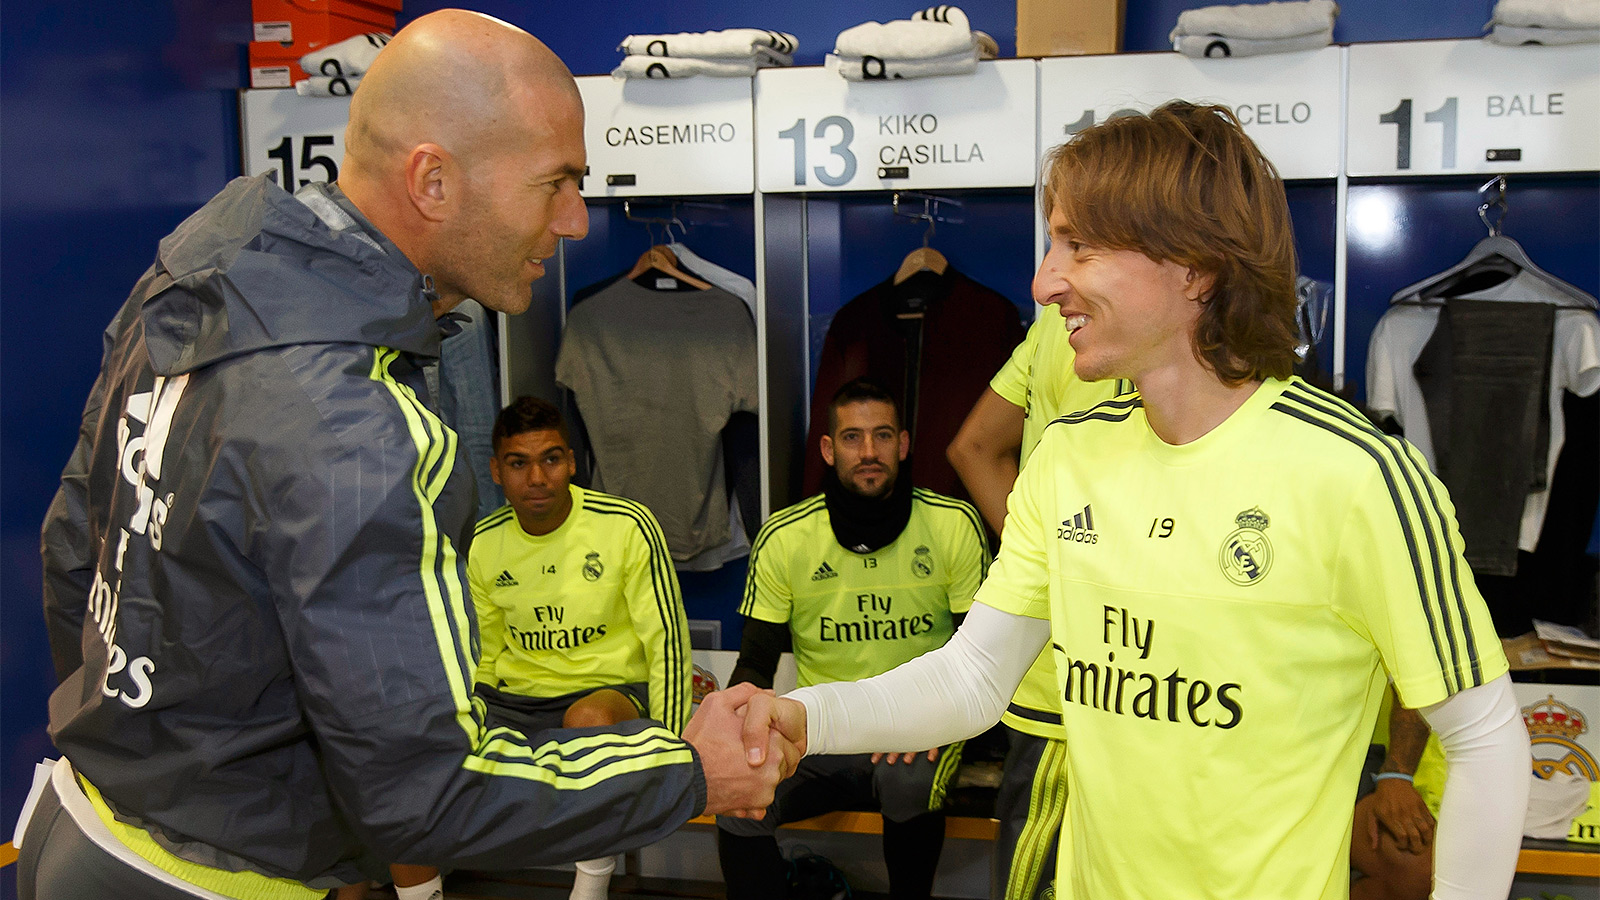 Modric believes Real's performance shows Zidane is the right man